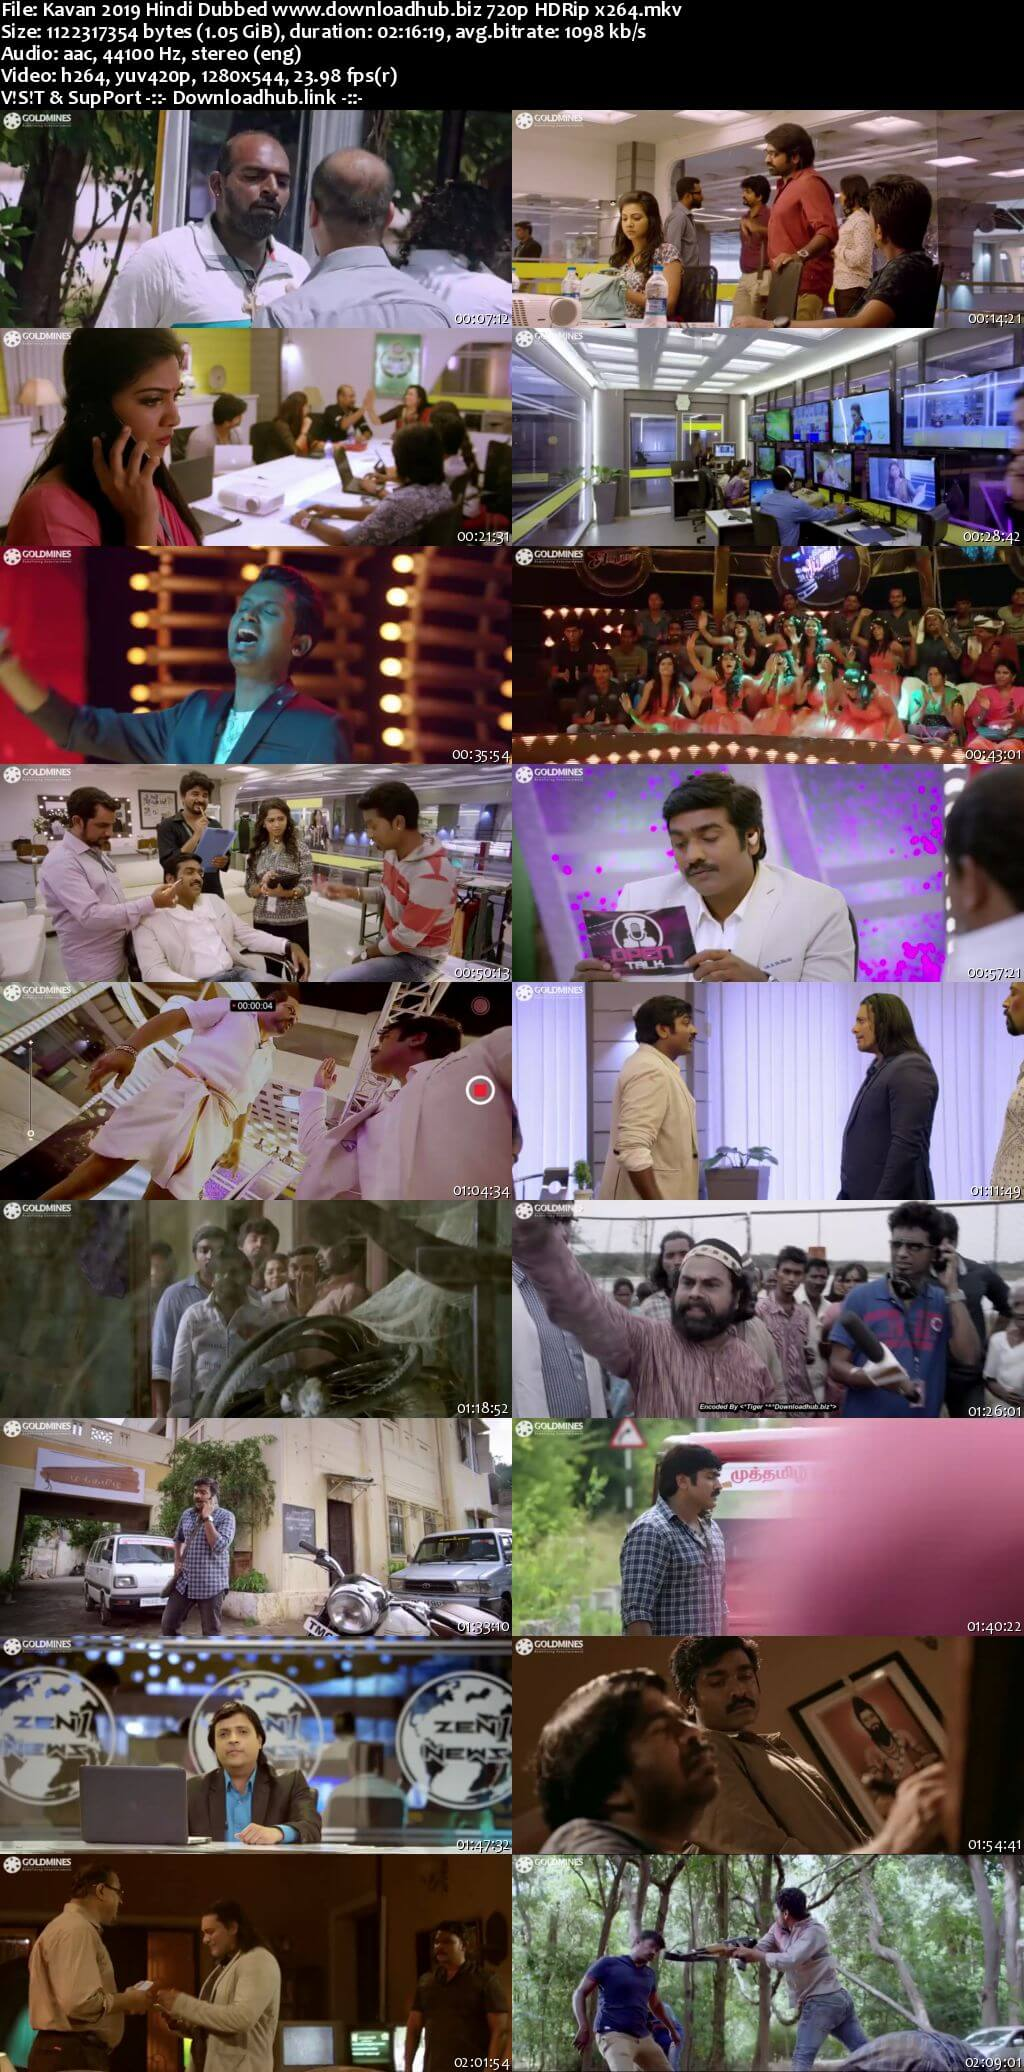 Kavan 2019 Hindi Dubbed 720p HDRip x264